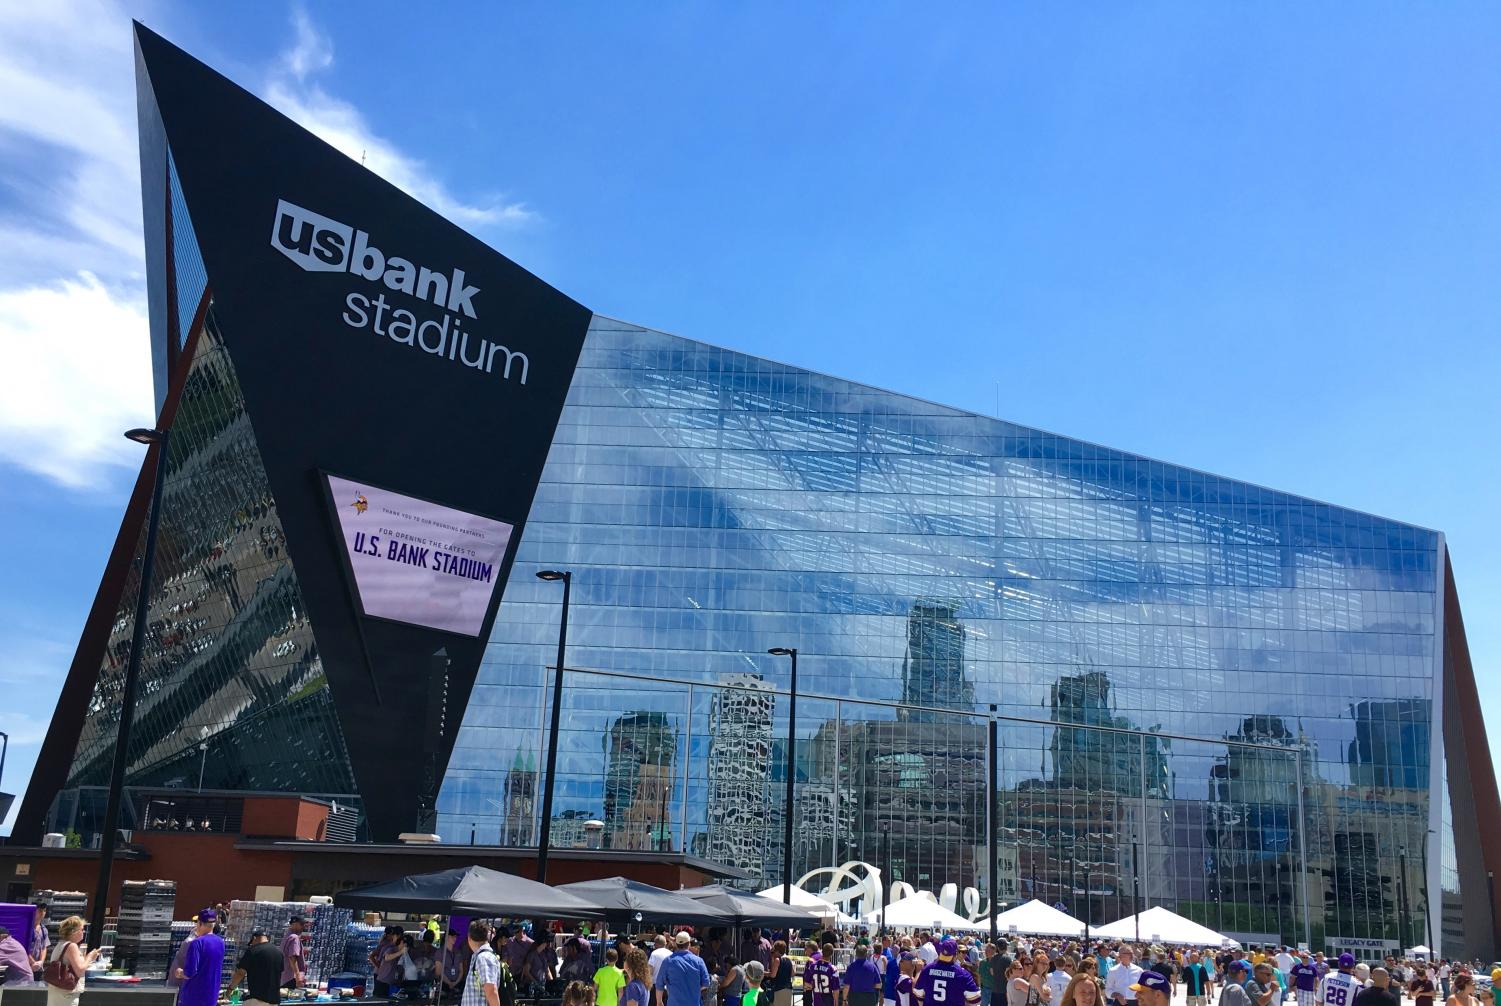 The Super Bowl took place in the US Bank Stadium.